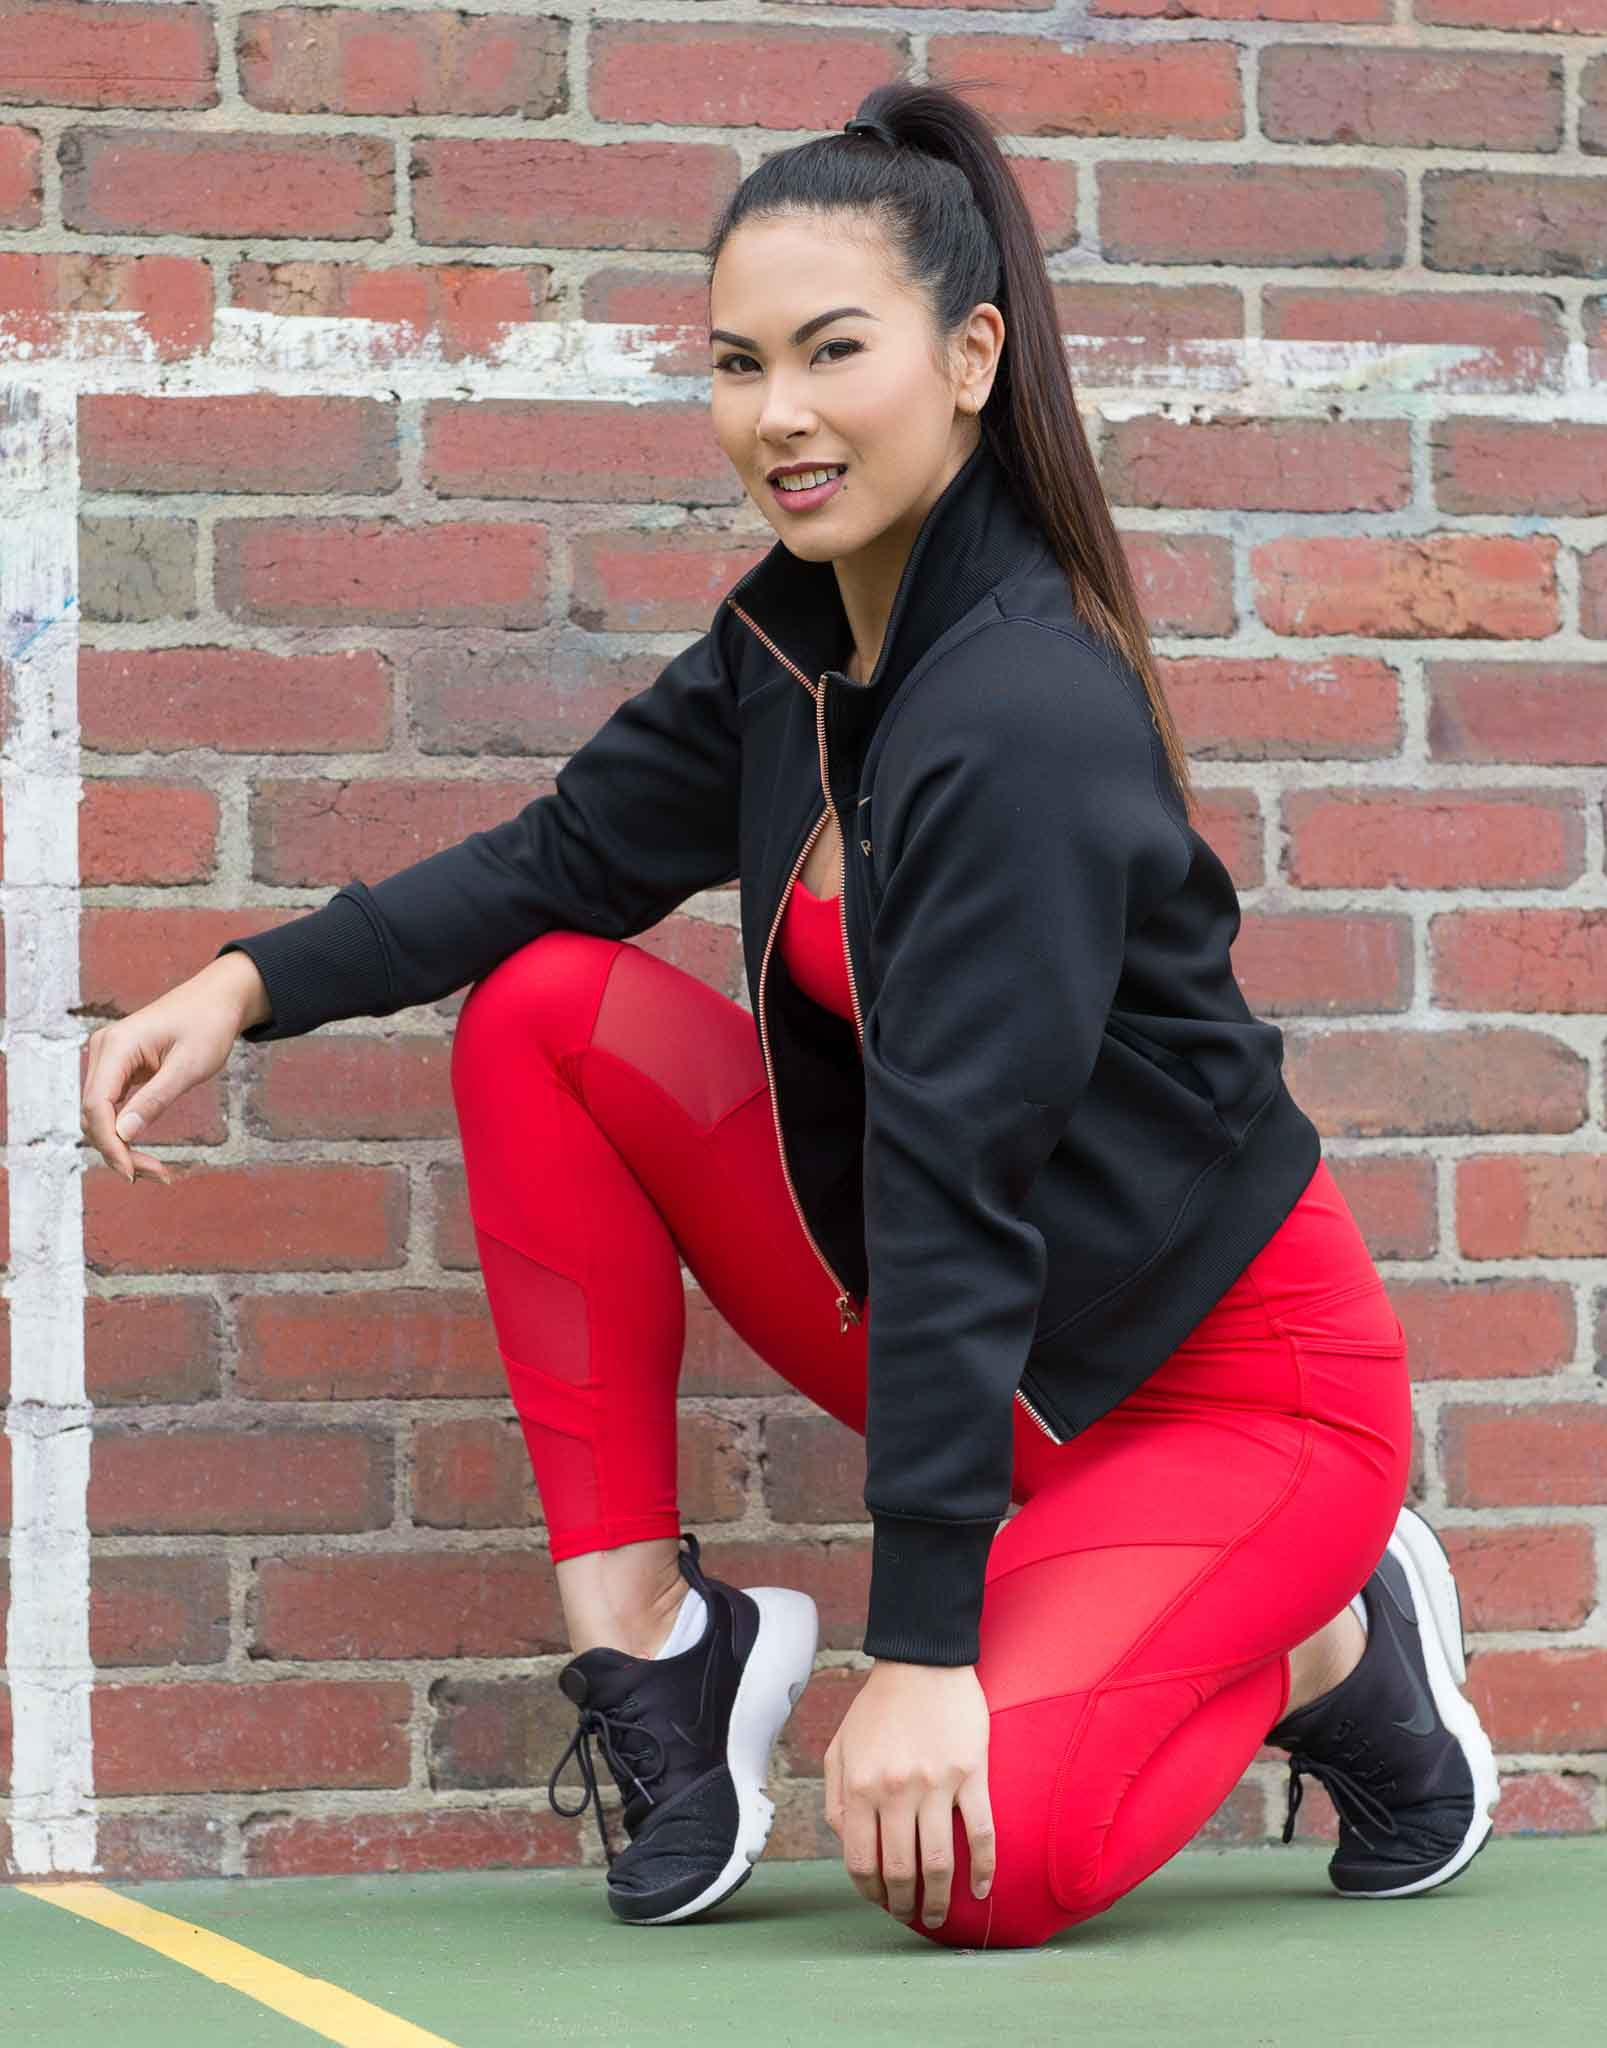 Gladysha Melbourne Fitness Female elite model featuring in Stop it I like it fitness photo shoot